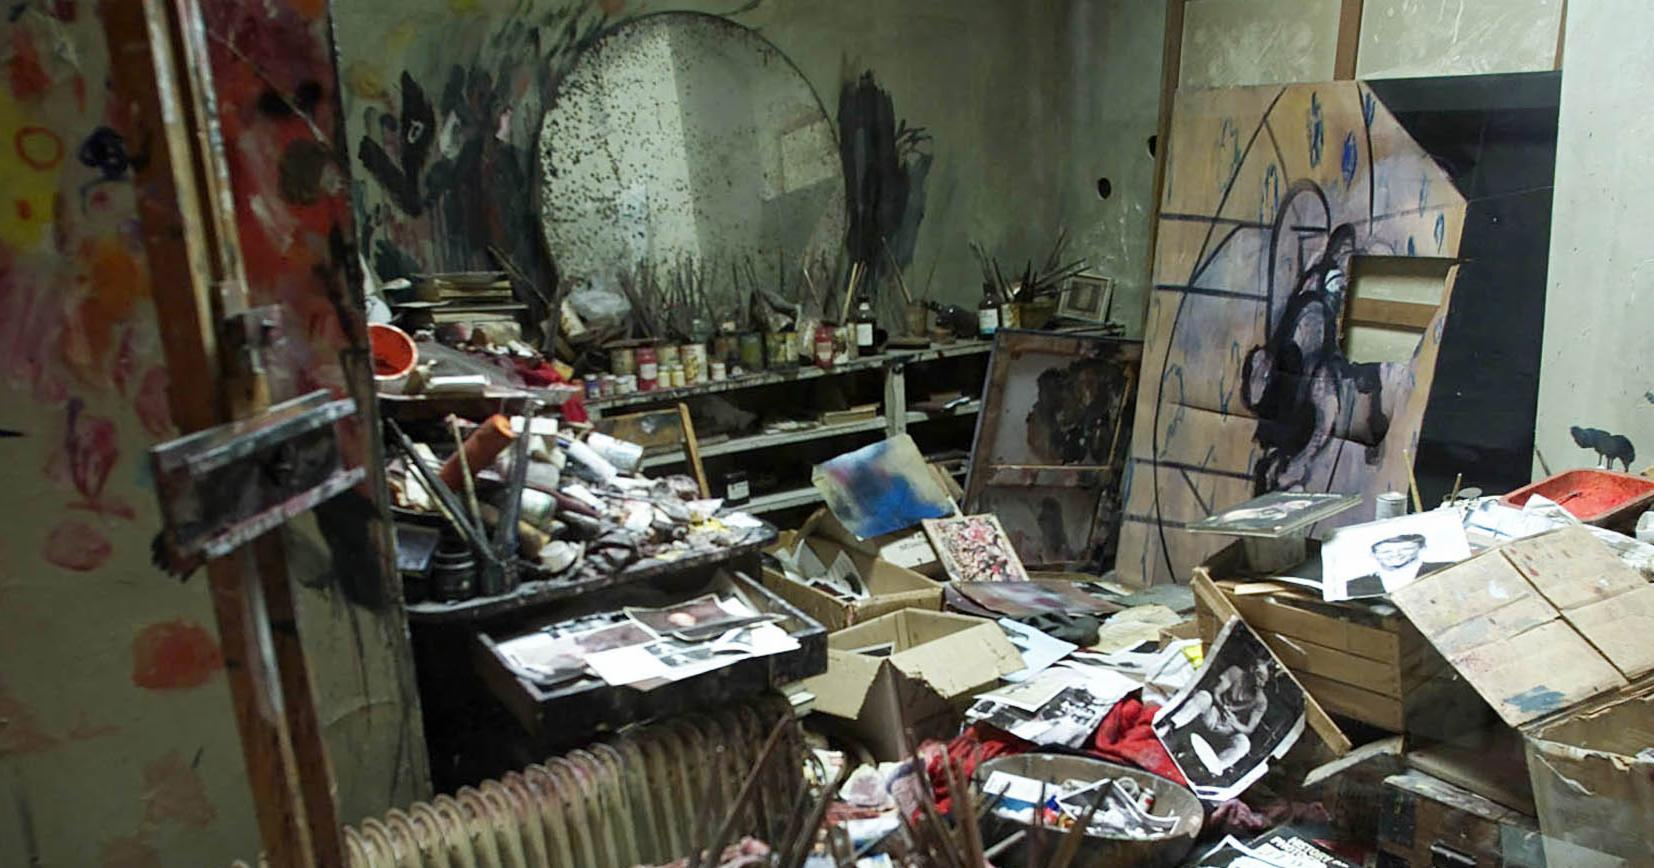 Austin Kleon On Why Having A Messy Studio Can Help You As An Artist Artsy